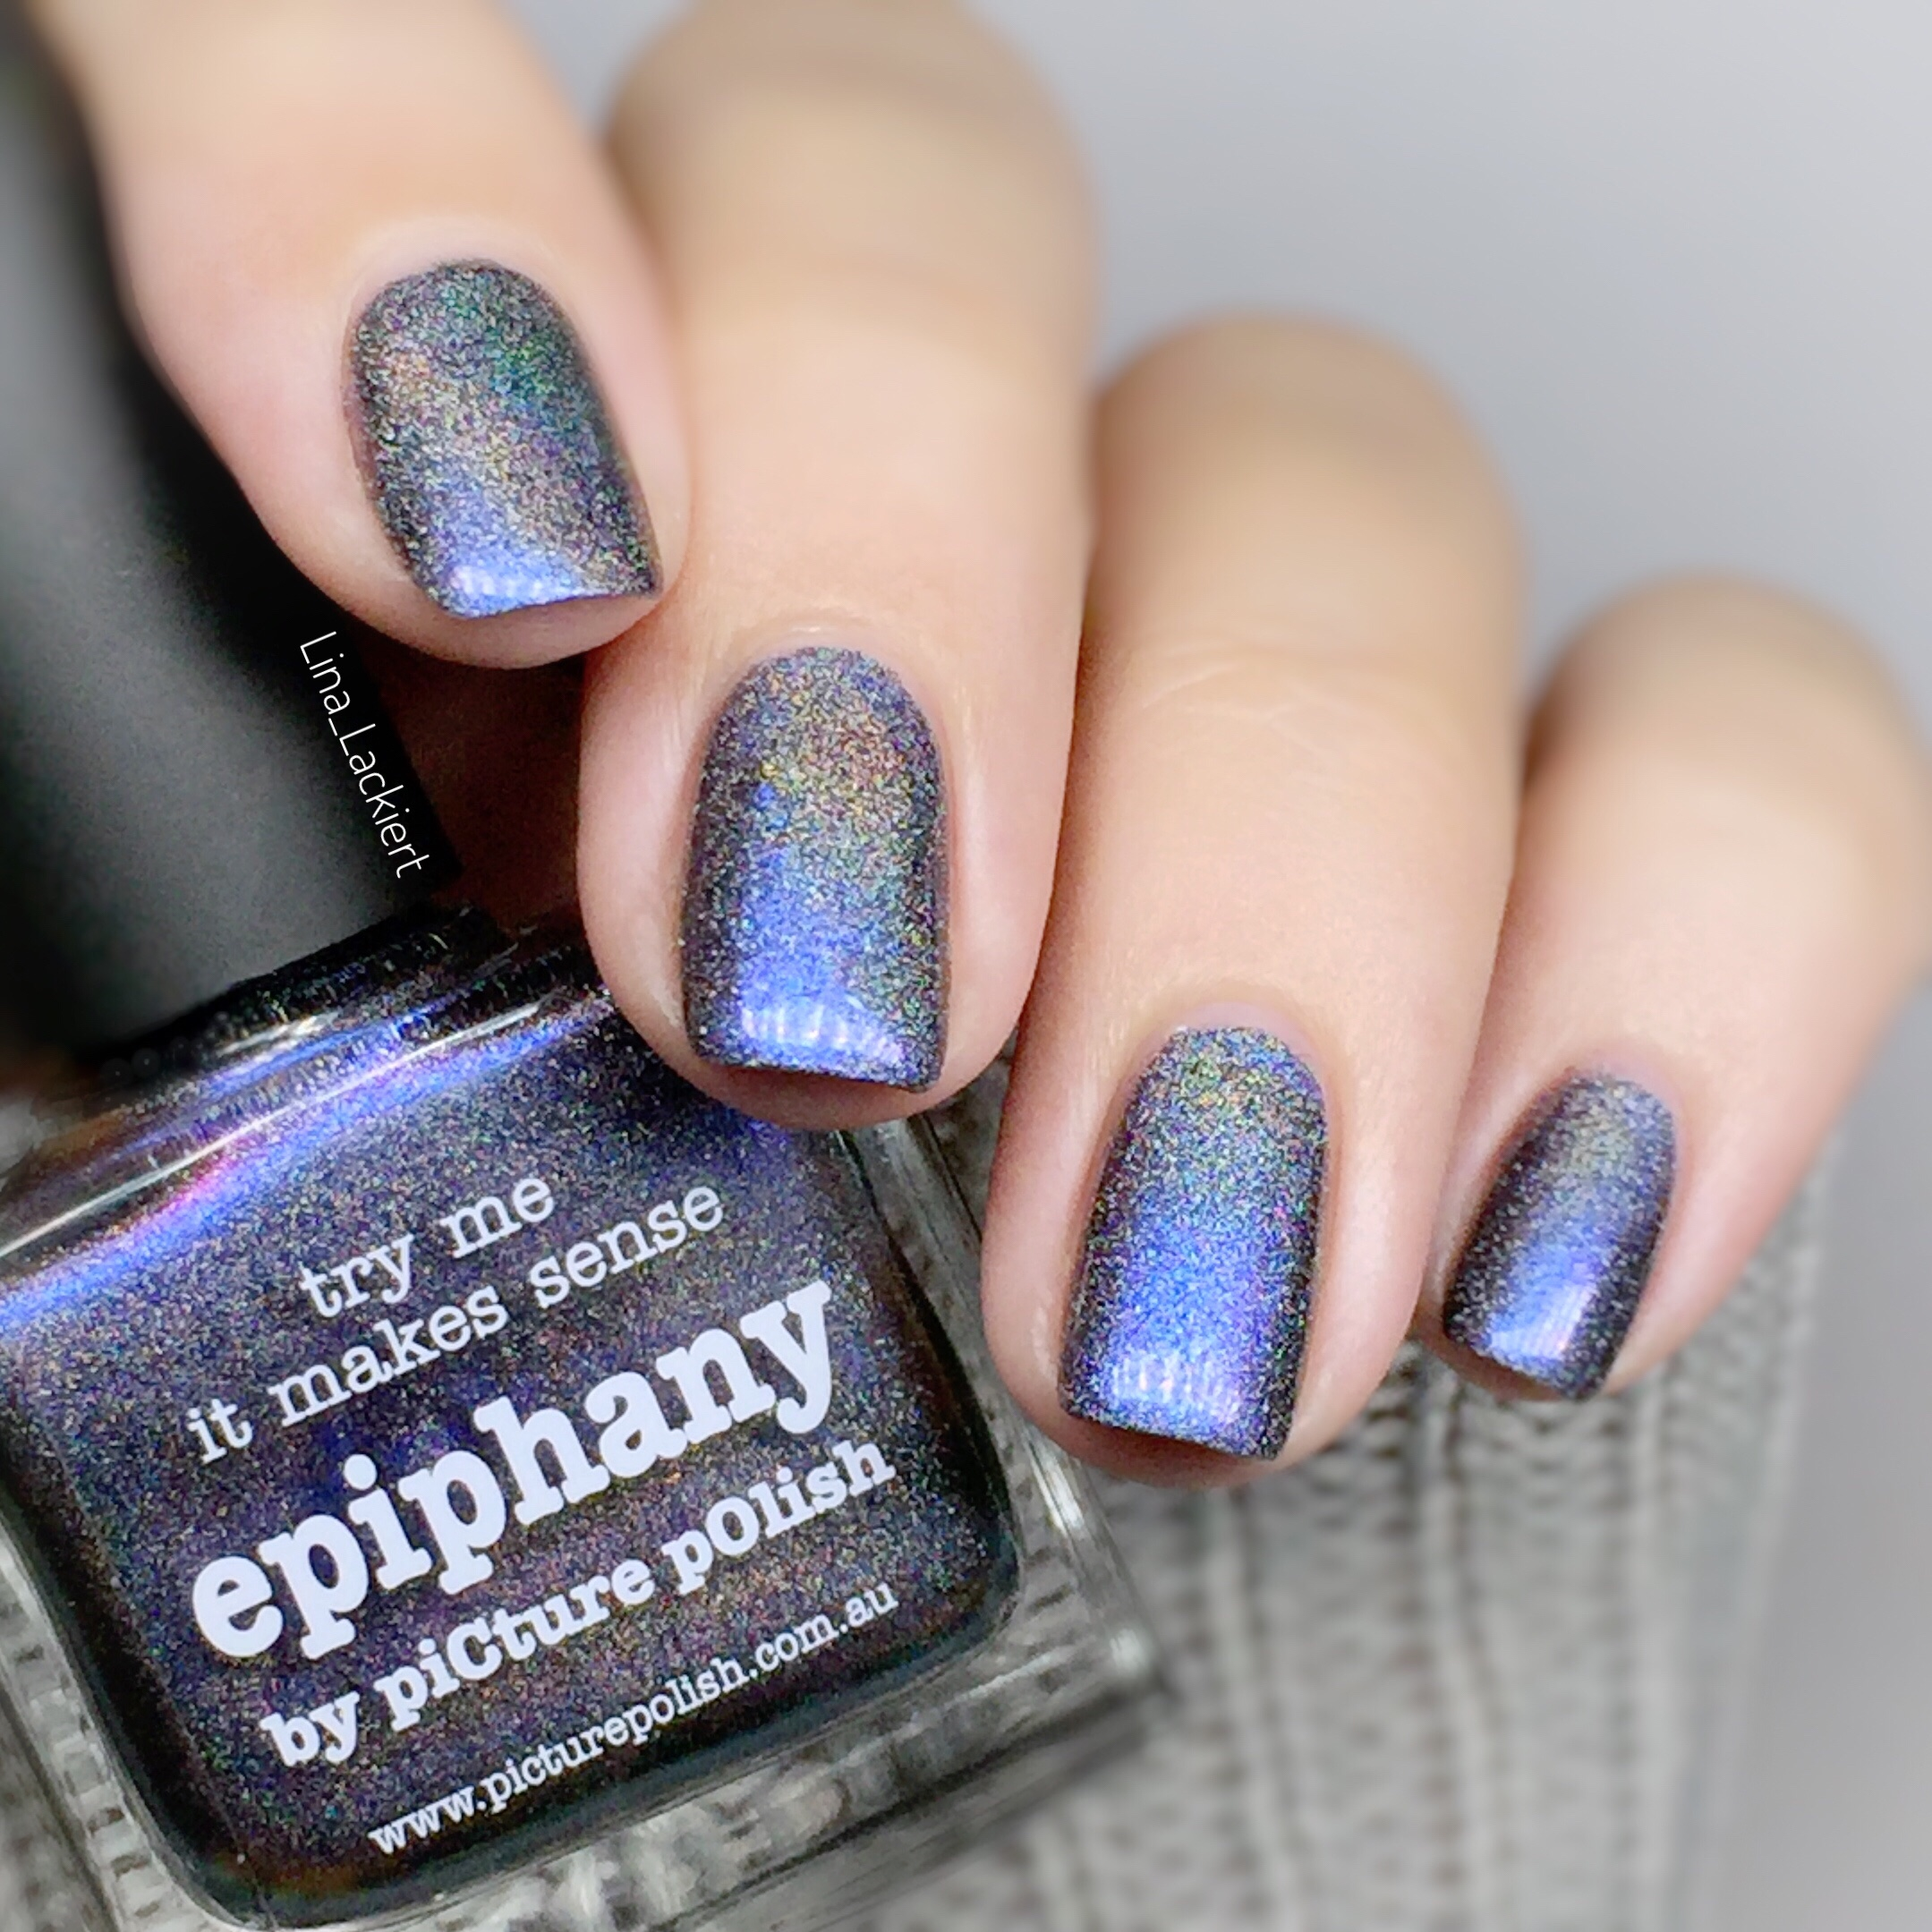 epiphany by picture polish